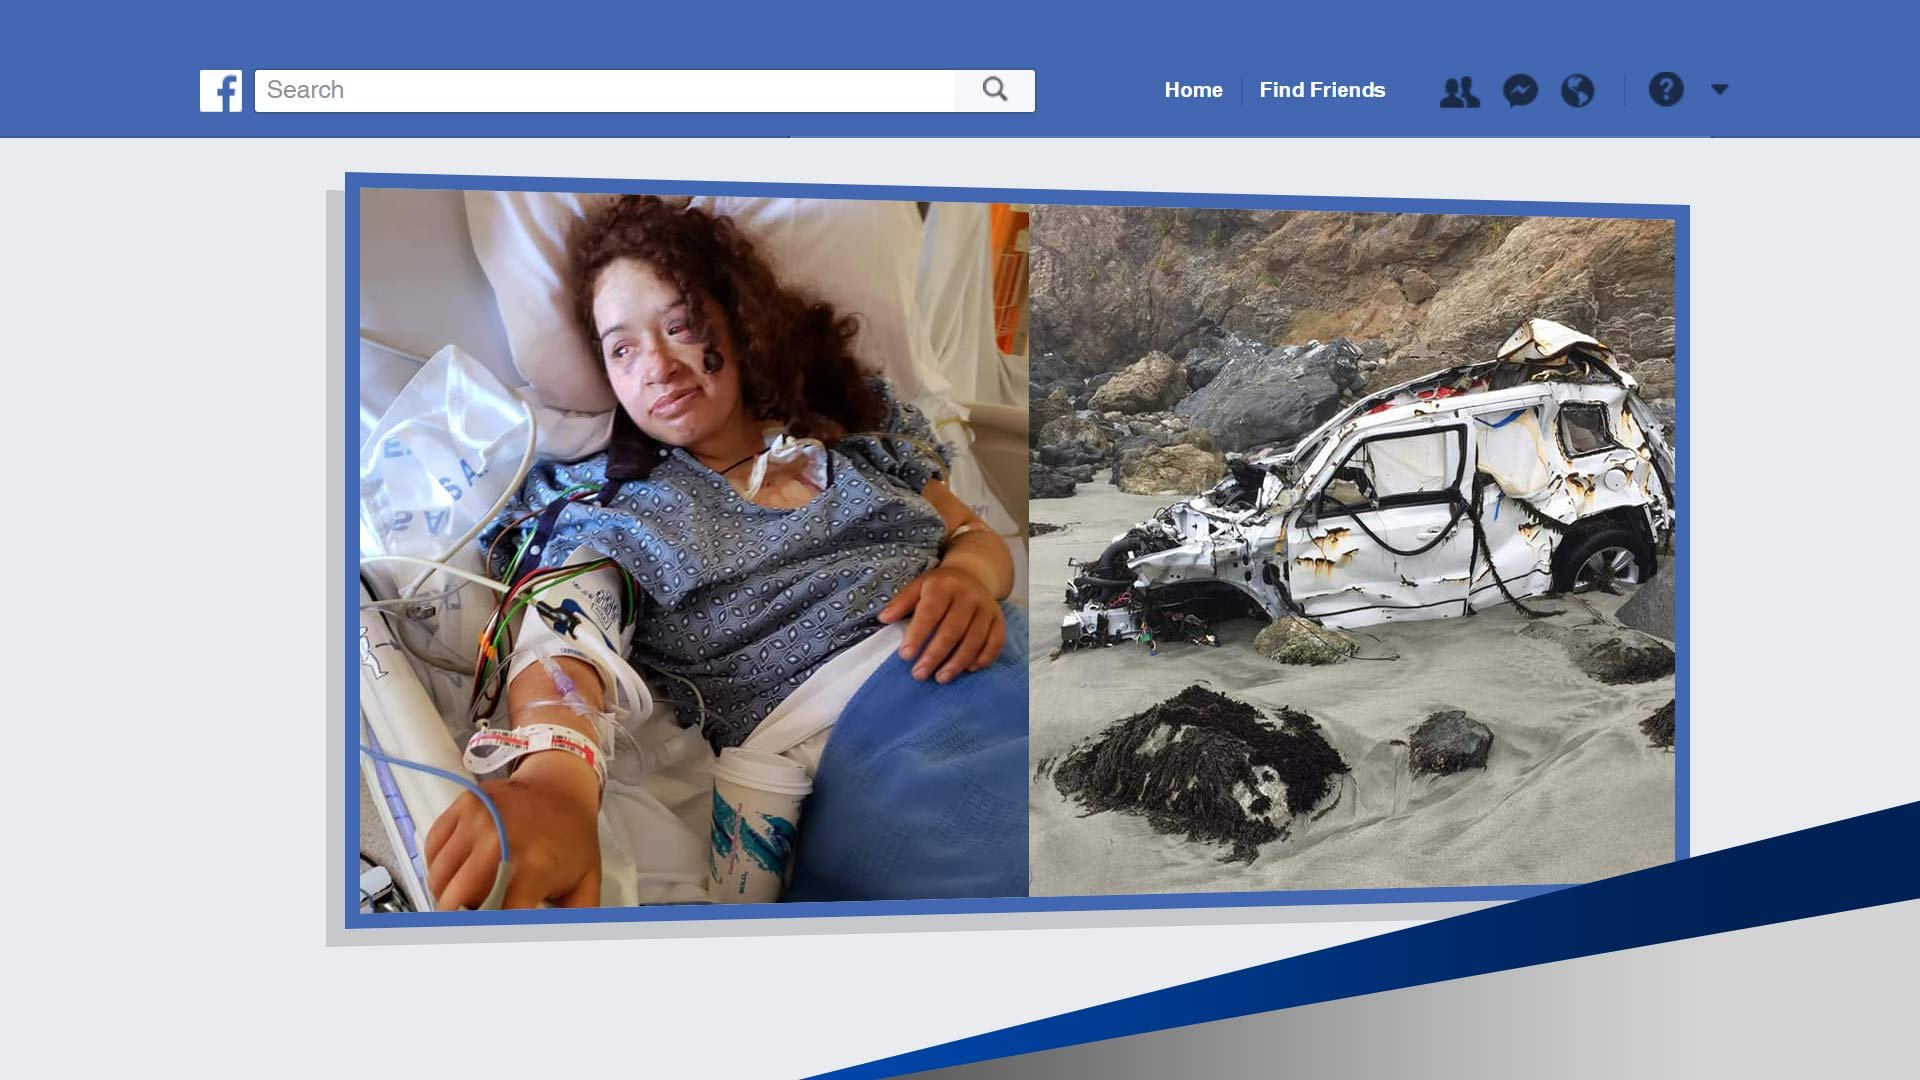 Woman survives for a week after crashing auto off 200-foot cliff